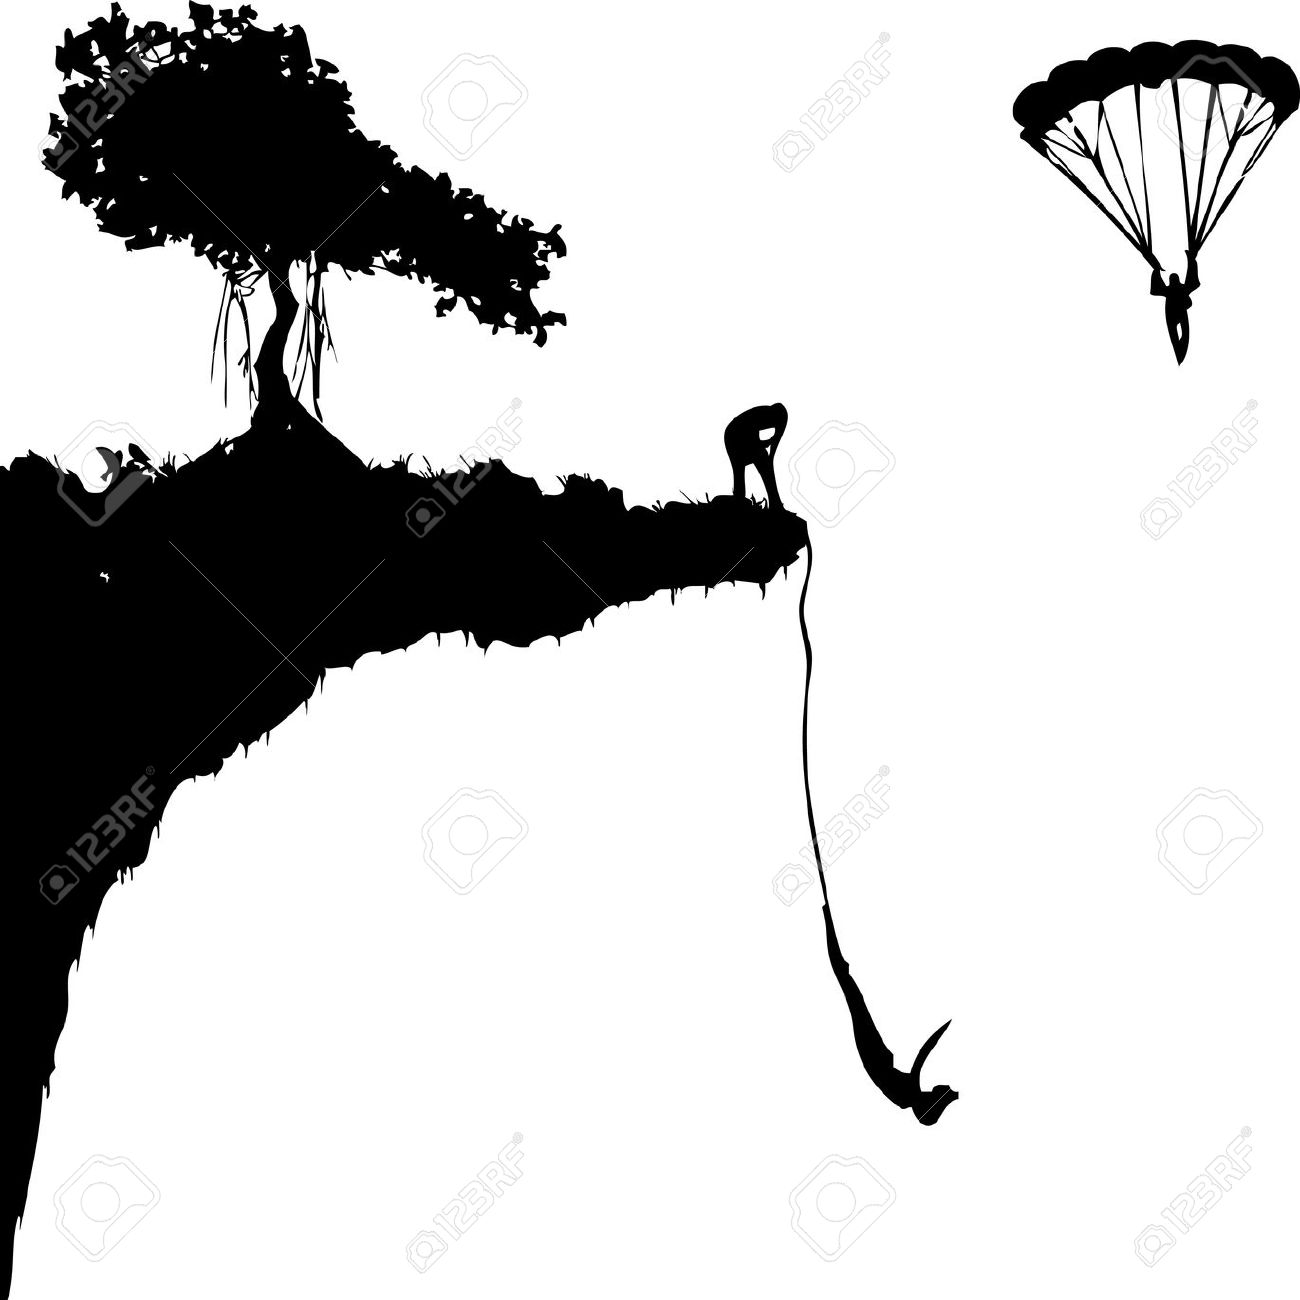 Bungee jumping clipart.